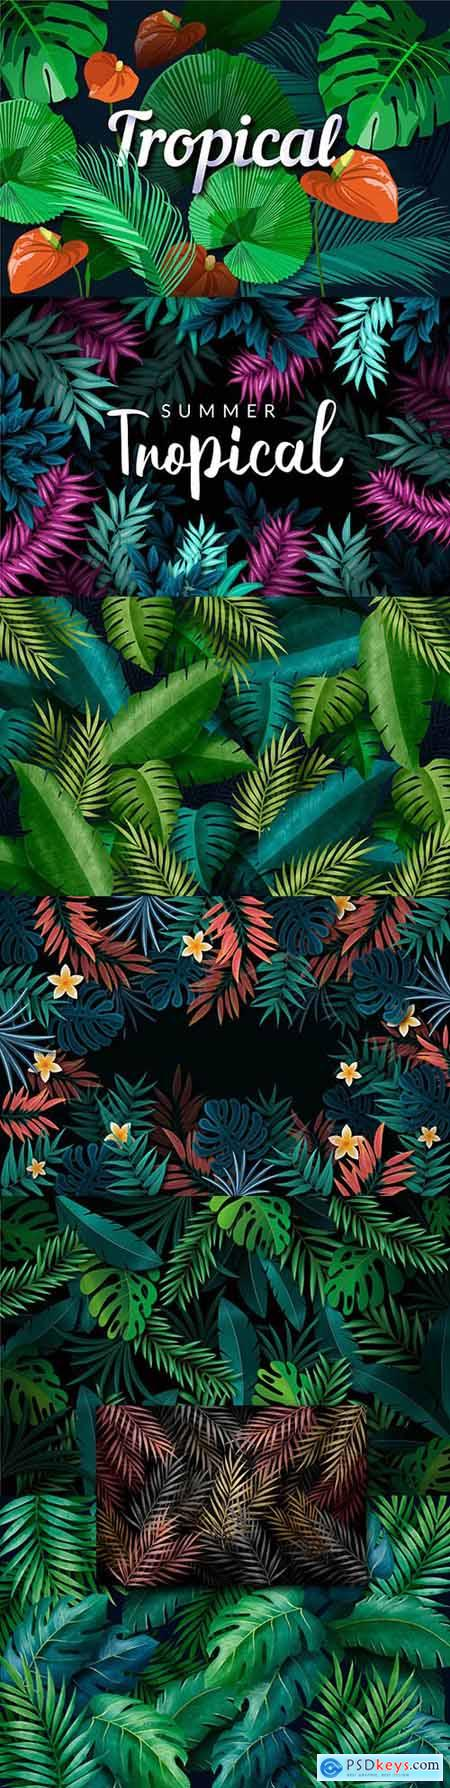 Tropical colored leaves with flowers and inscriptions